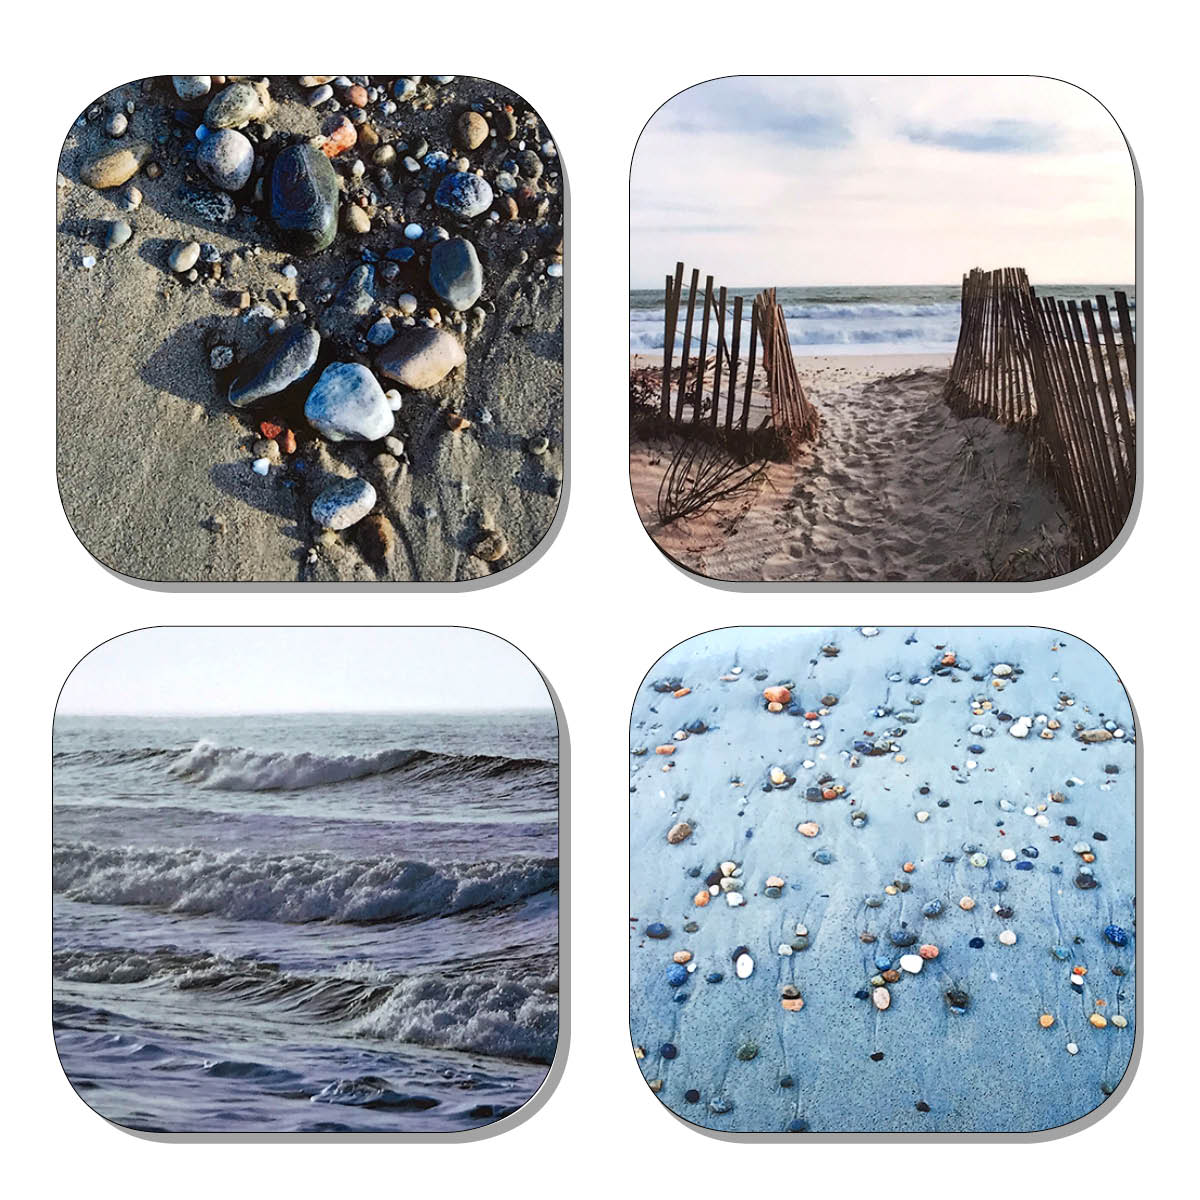 Coaster Set - Seashore